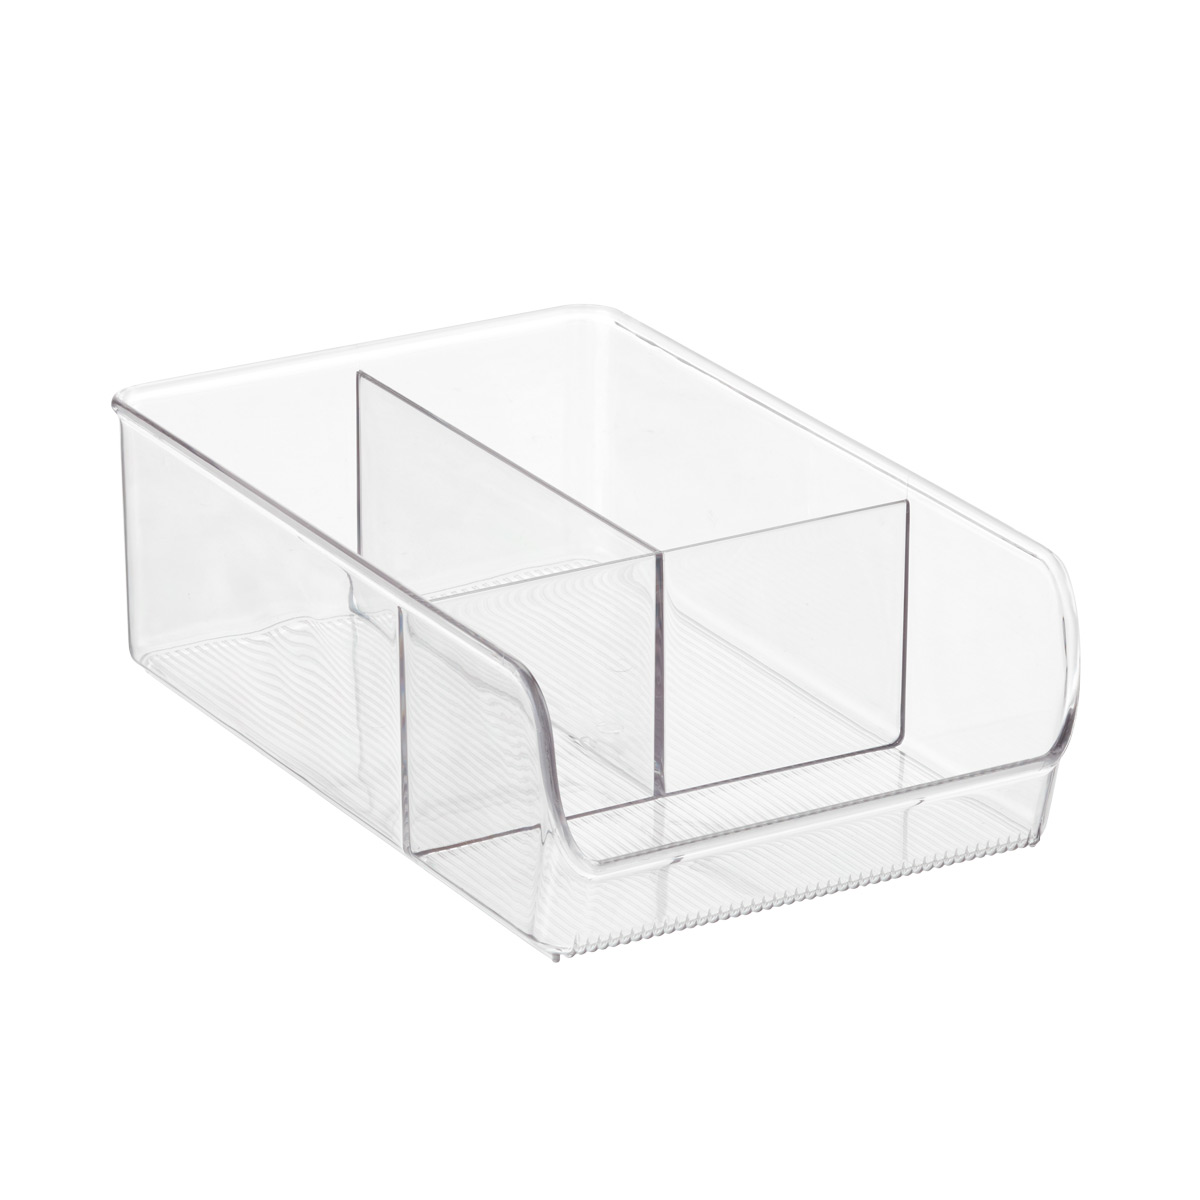 3-Section Cabinet Organizer